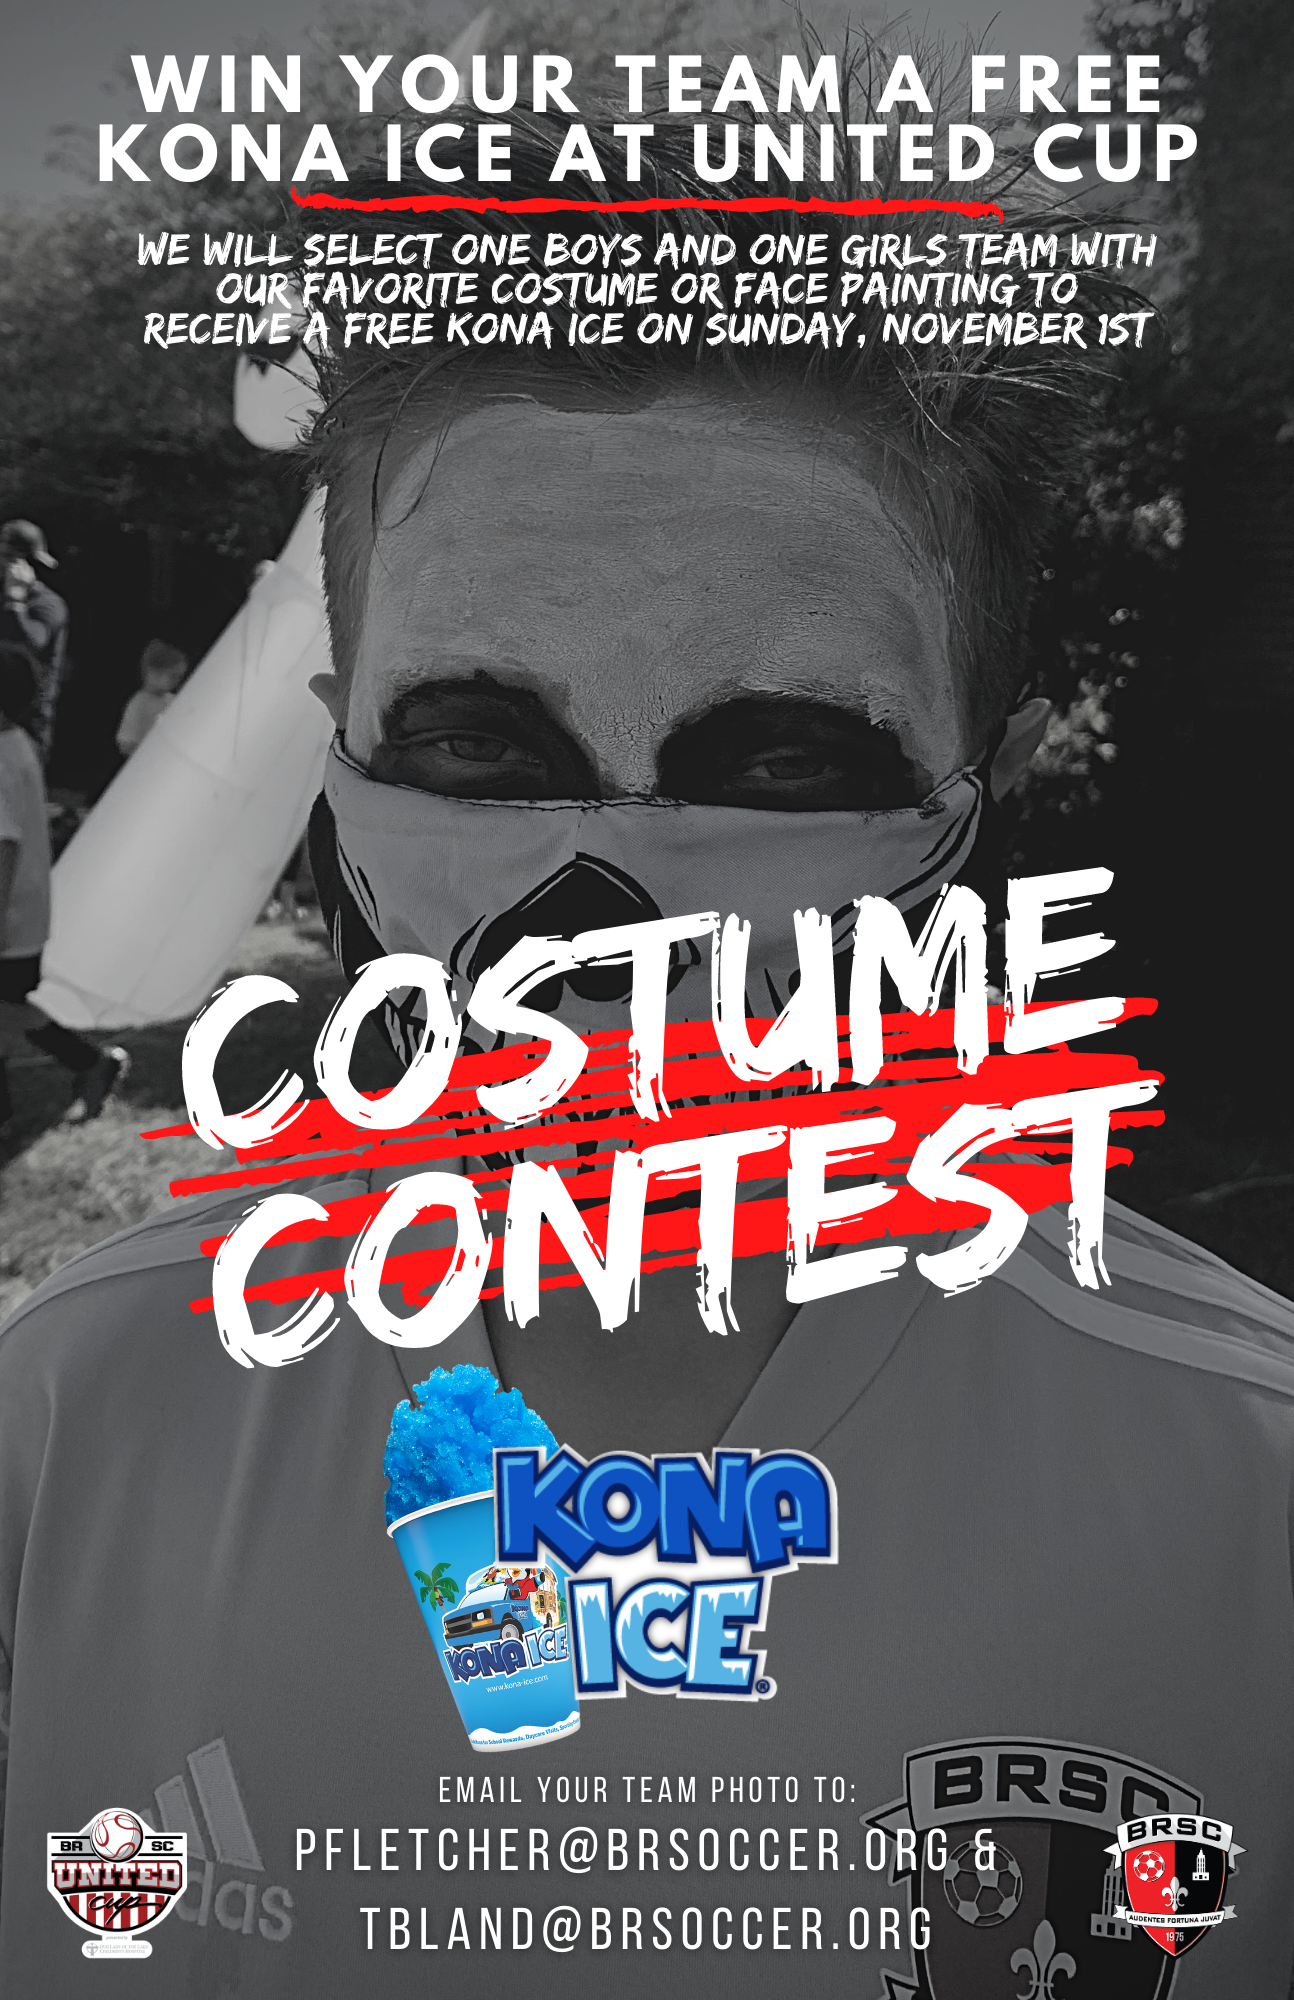 United Cup Costume Contest